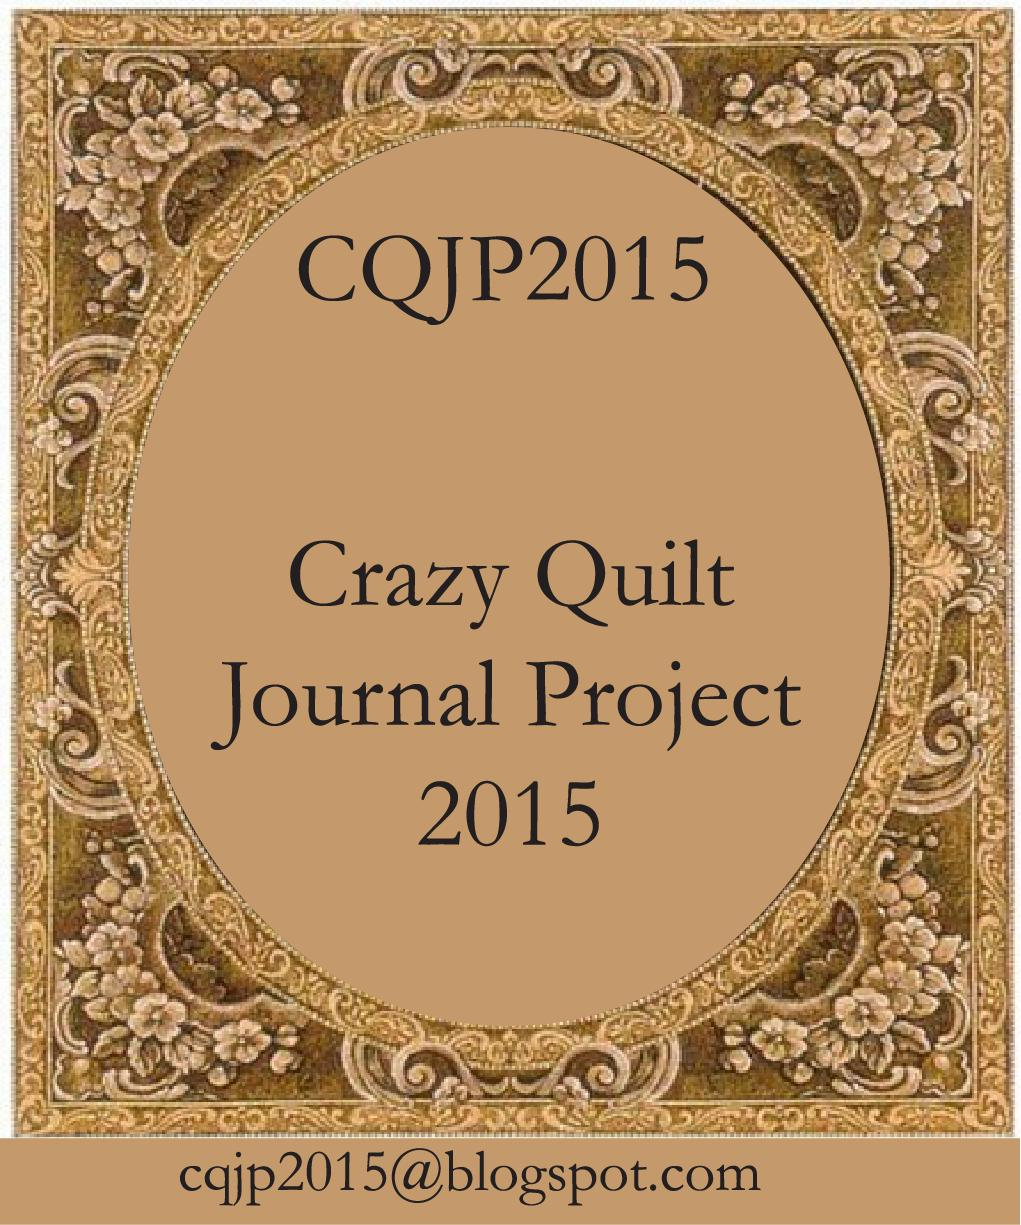 2015 Crazy Quilt Journal Project